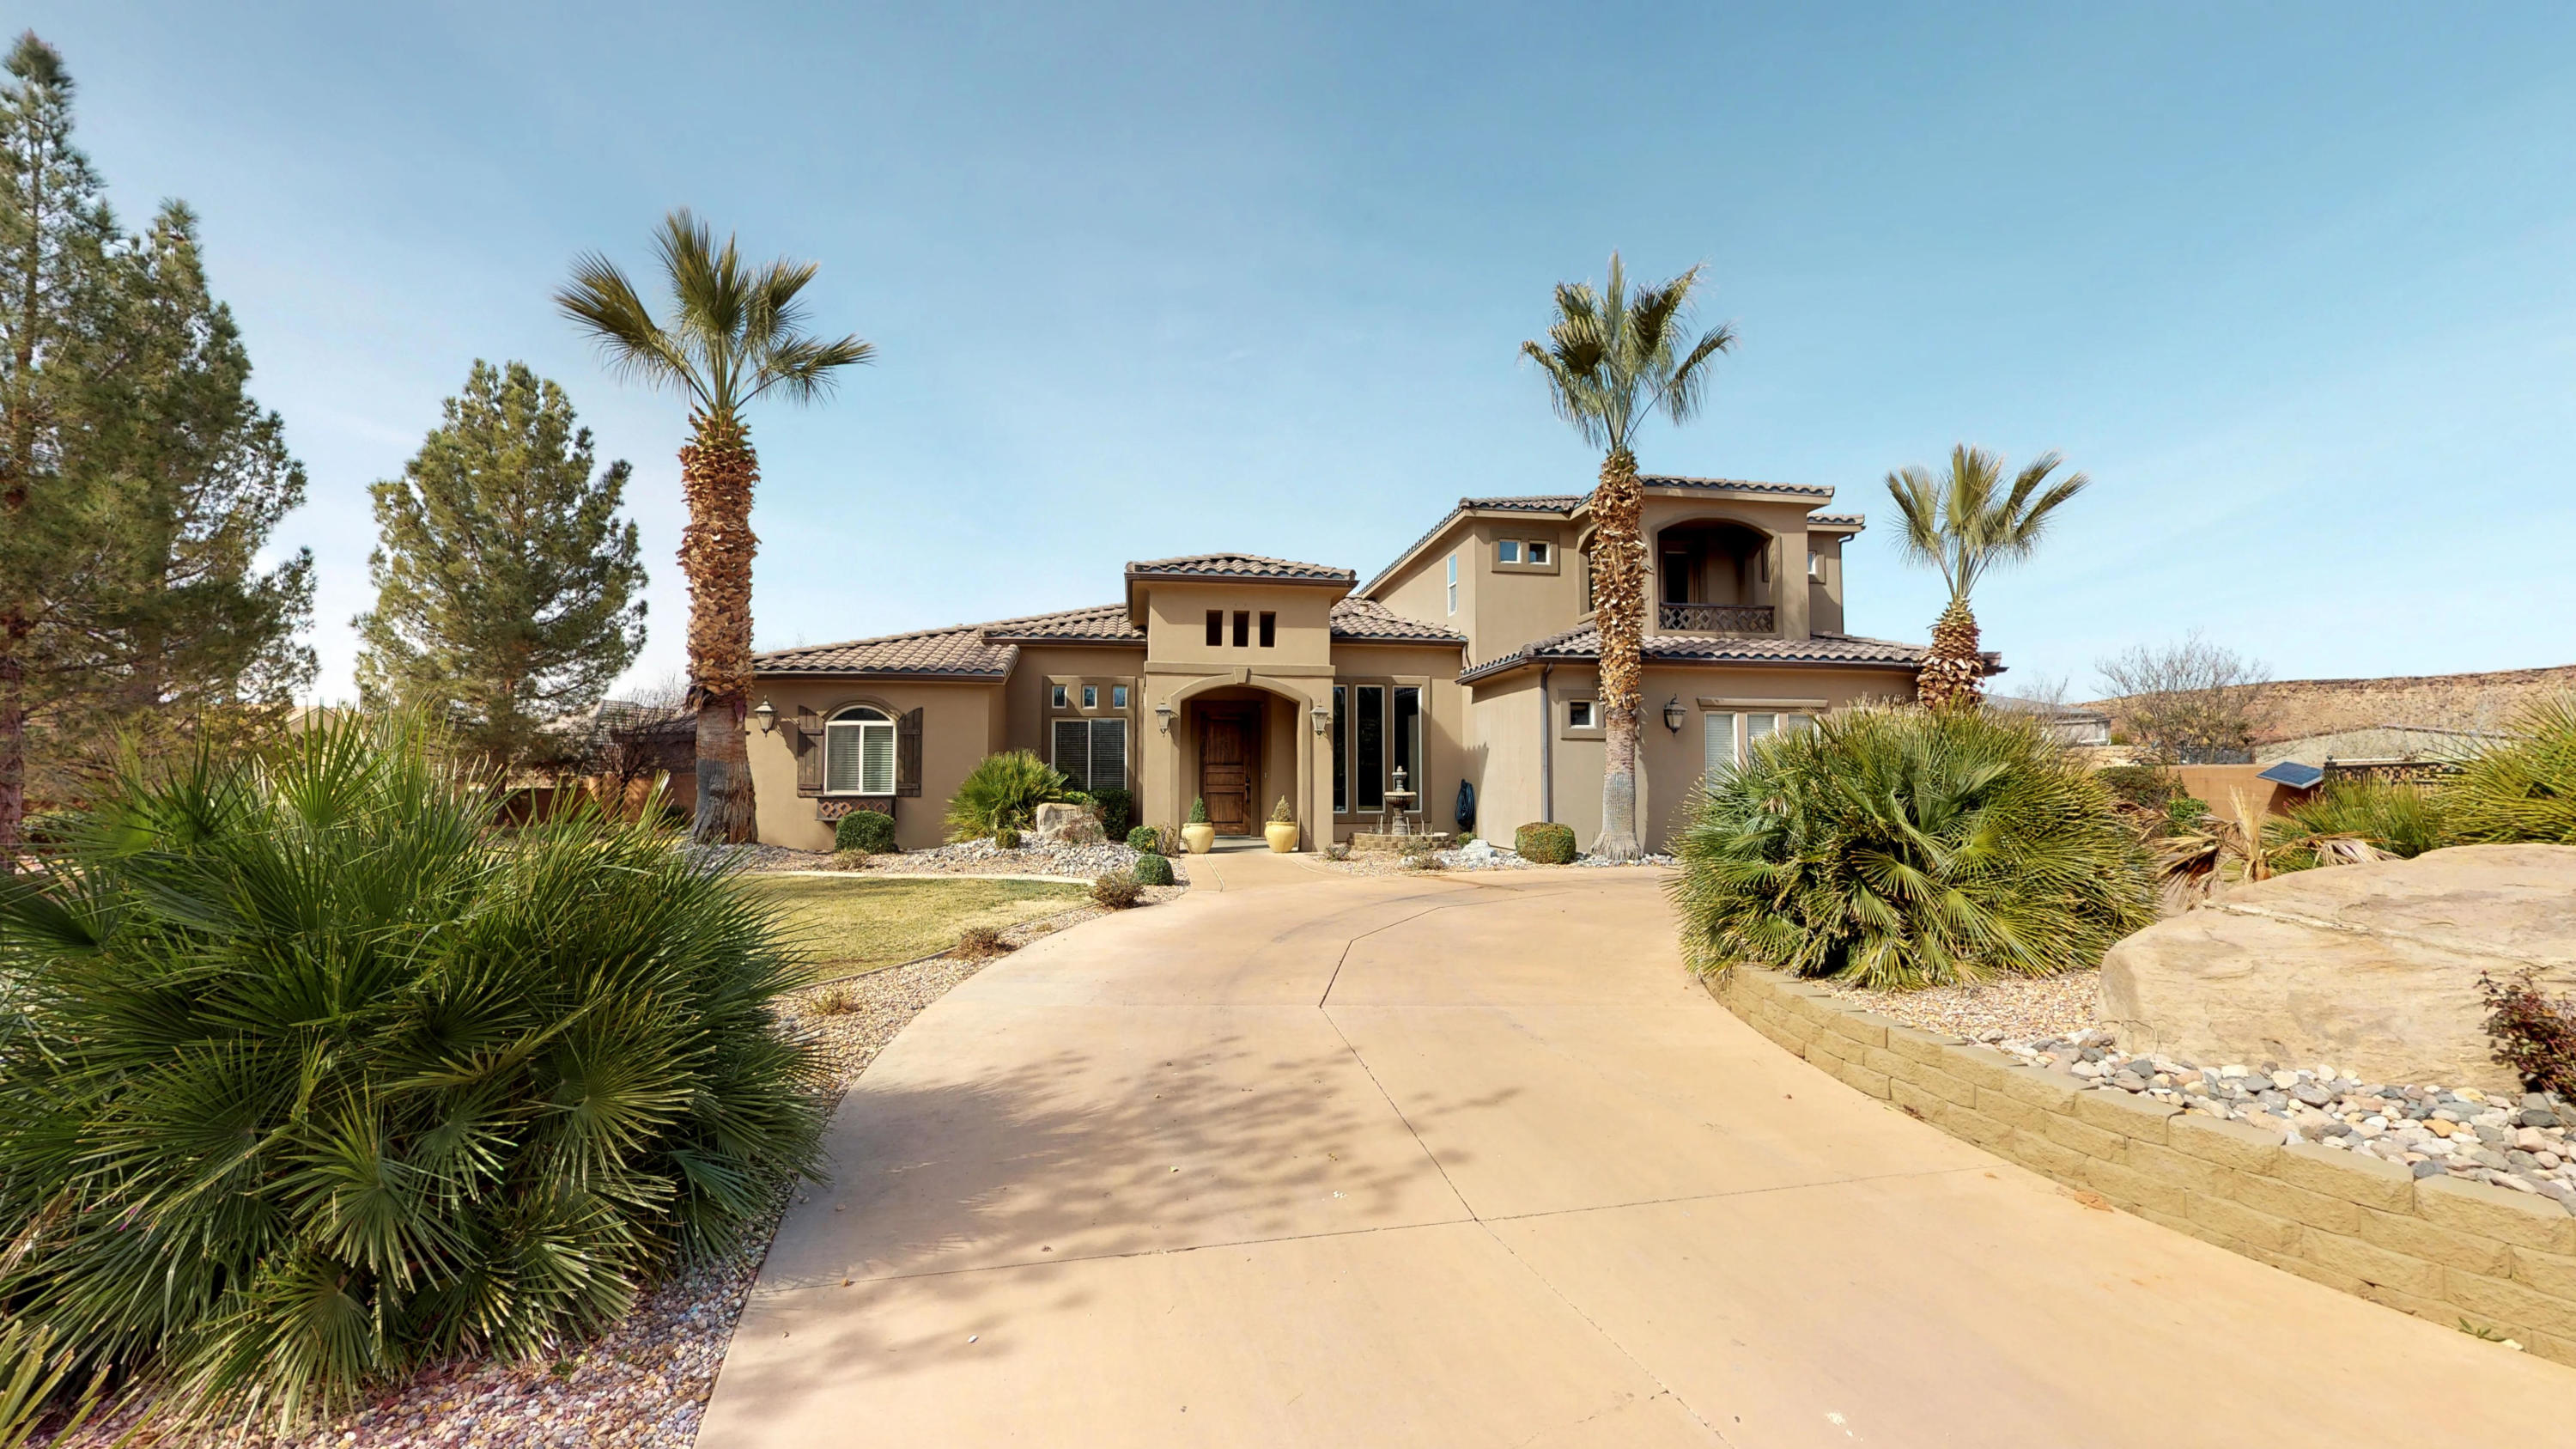 2896 S Ledge Rock Cir, St George Ut 84790